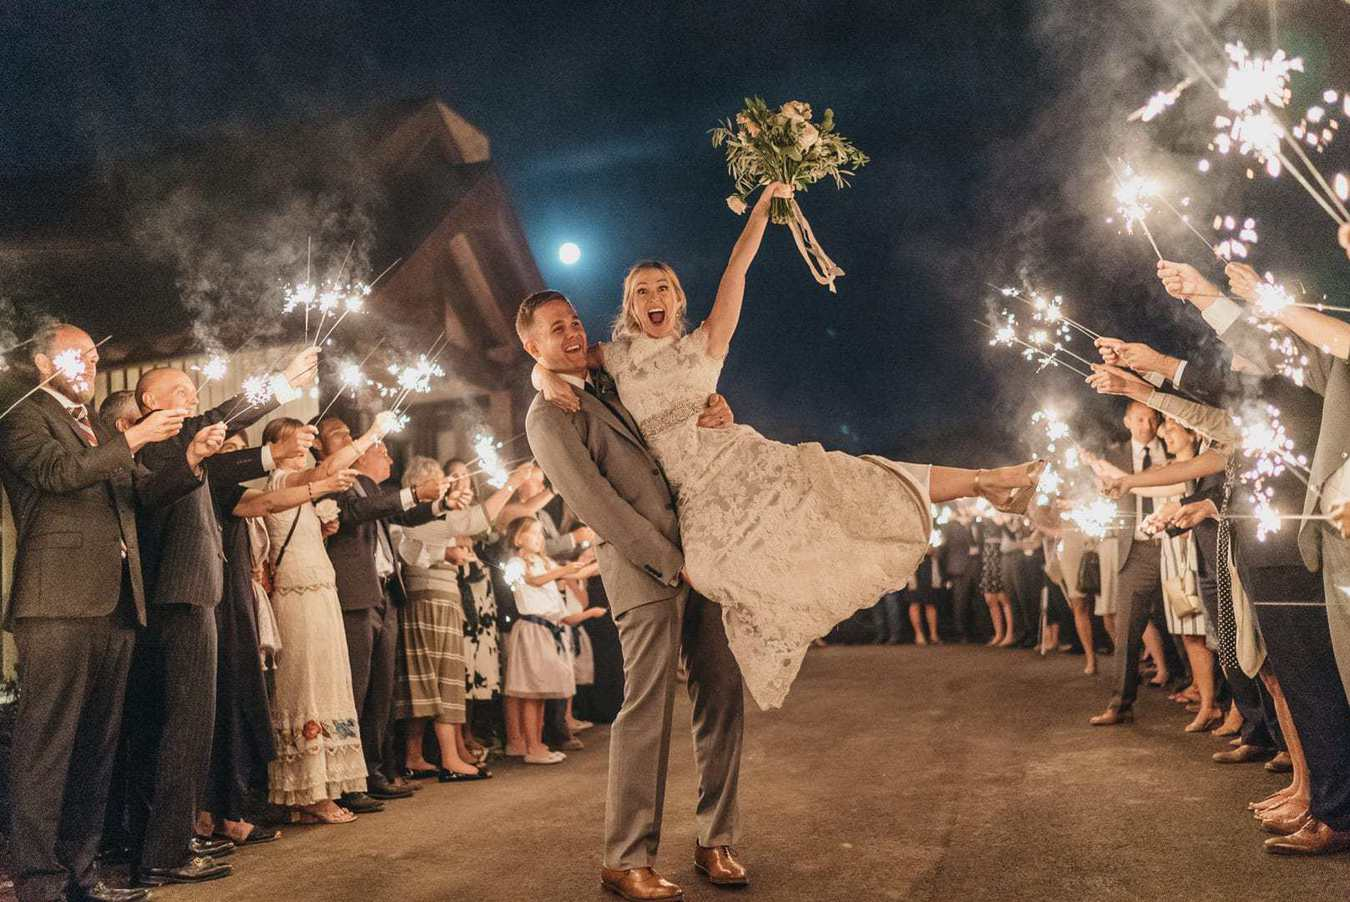 Groom holds bride up as she jumps up and smiles while sparklers are lit around them at their wedding reception.